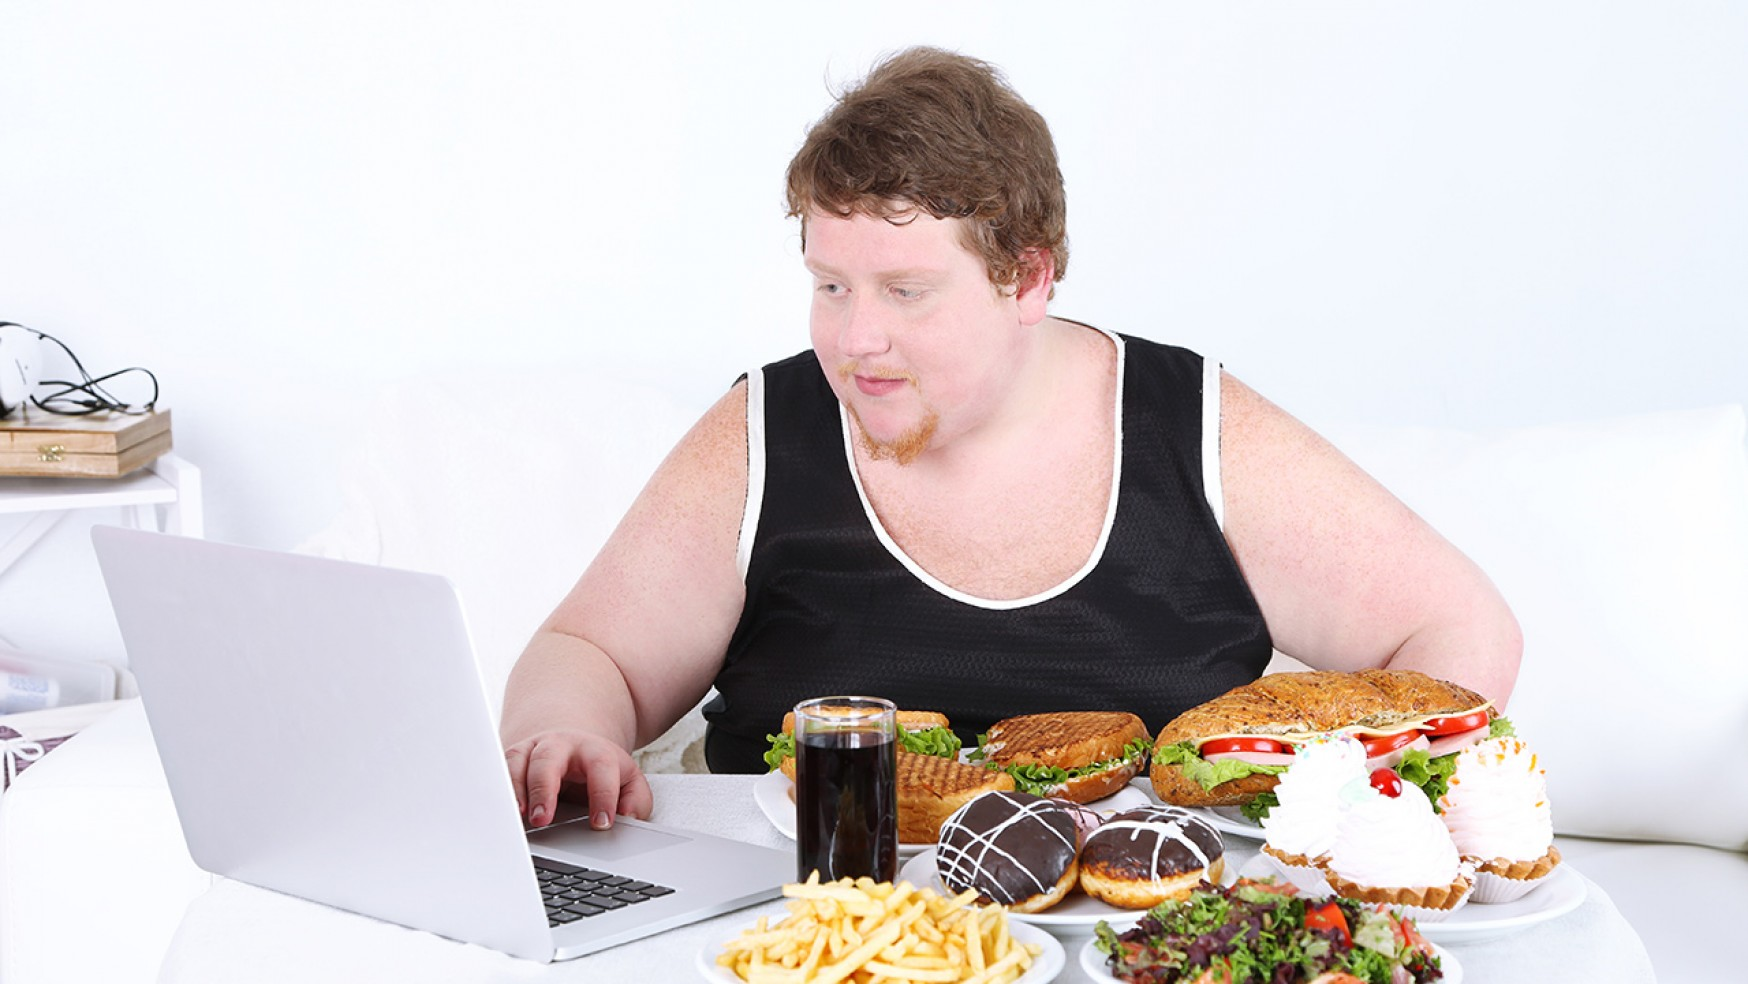 Why do we gain weight?